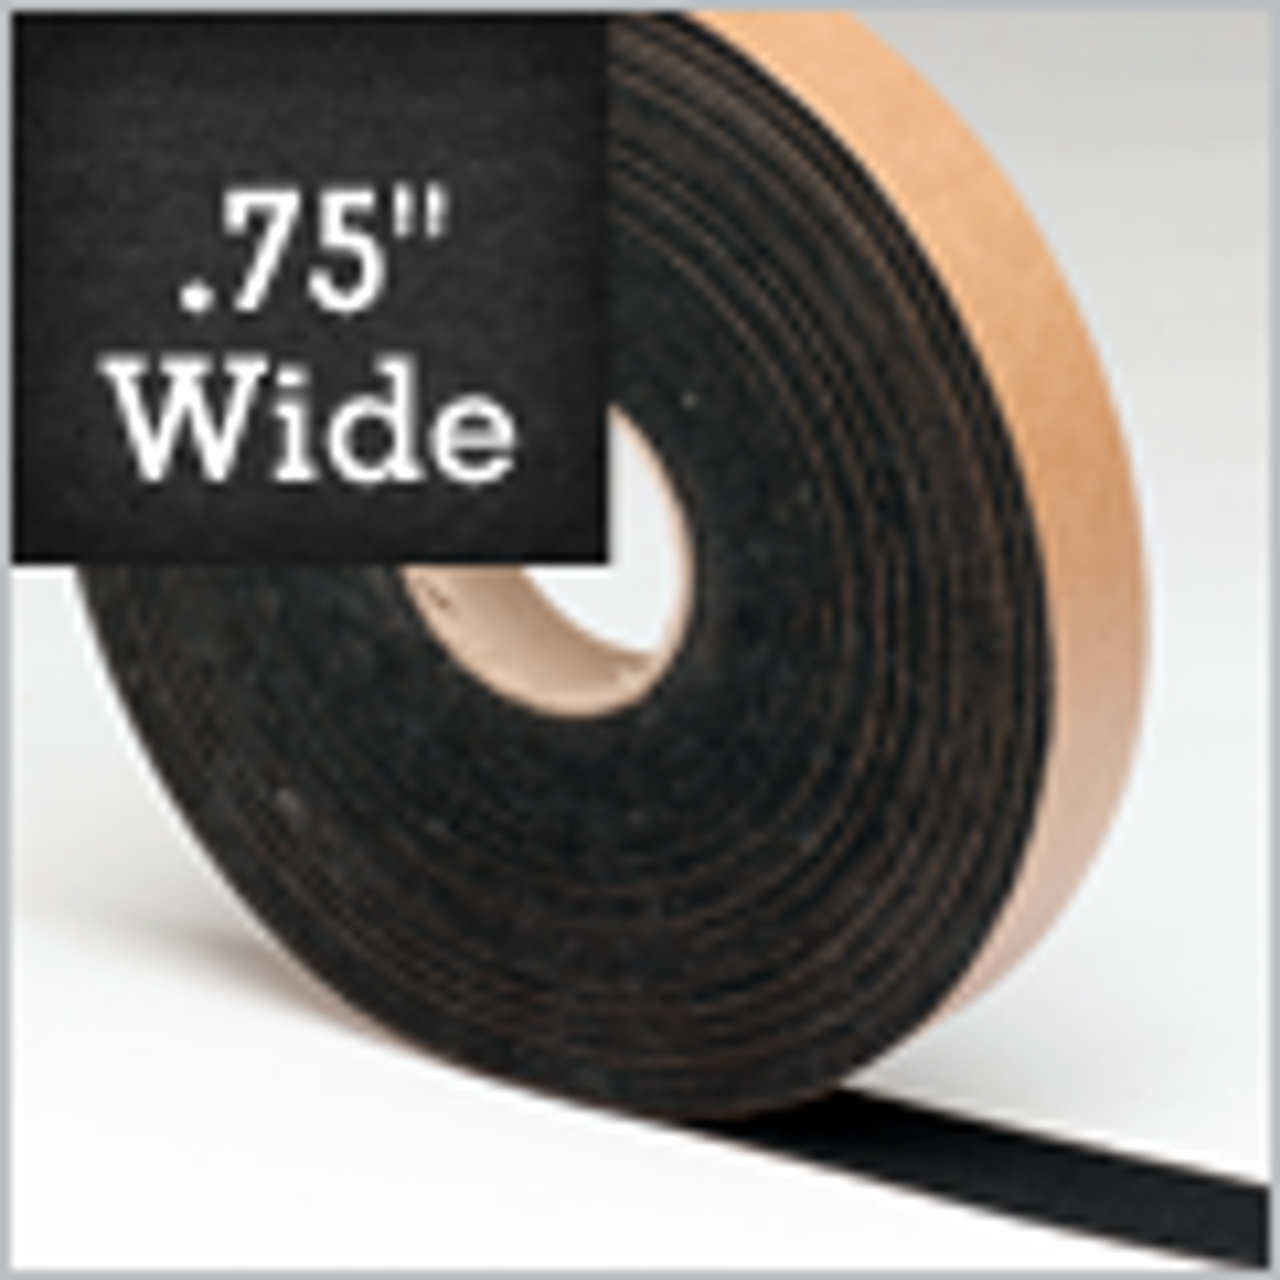 "Black Felt Stripping, 3/4"" Wide, Adhesive Backed"